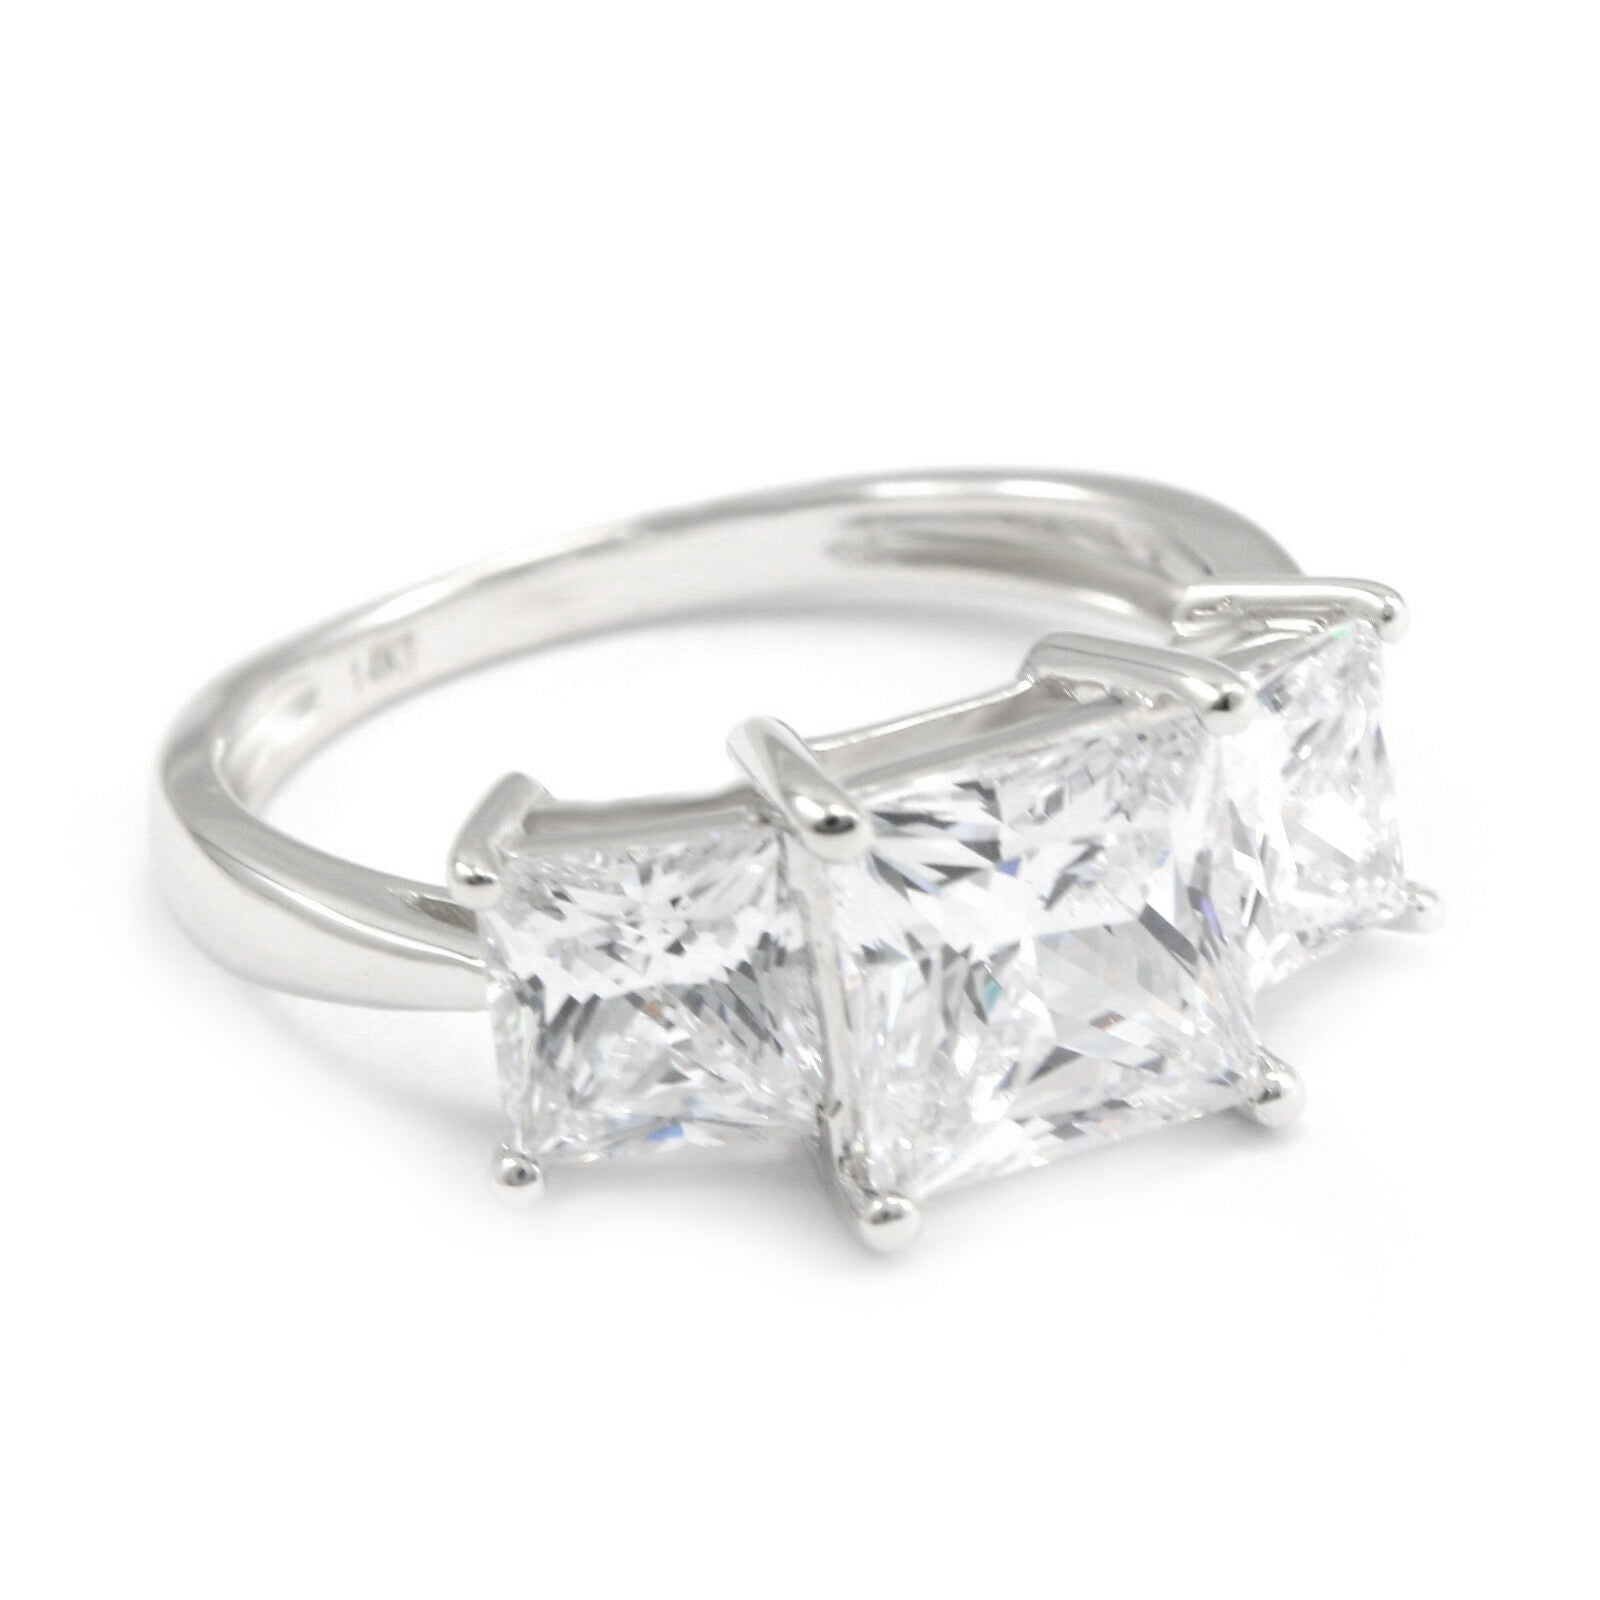 3 Ct  Princess Cut 3 Stone Ring, Solid 14k Gold Ring, Diamond Engagement  Ring, White Gold